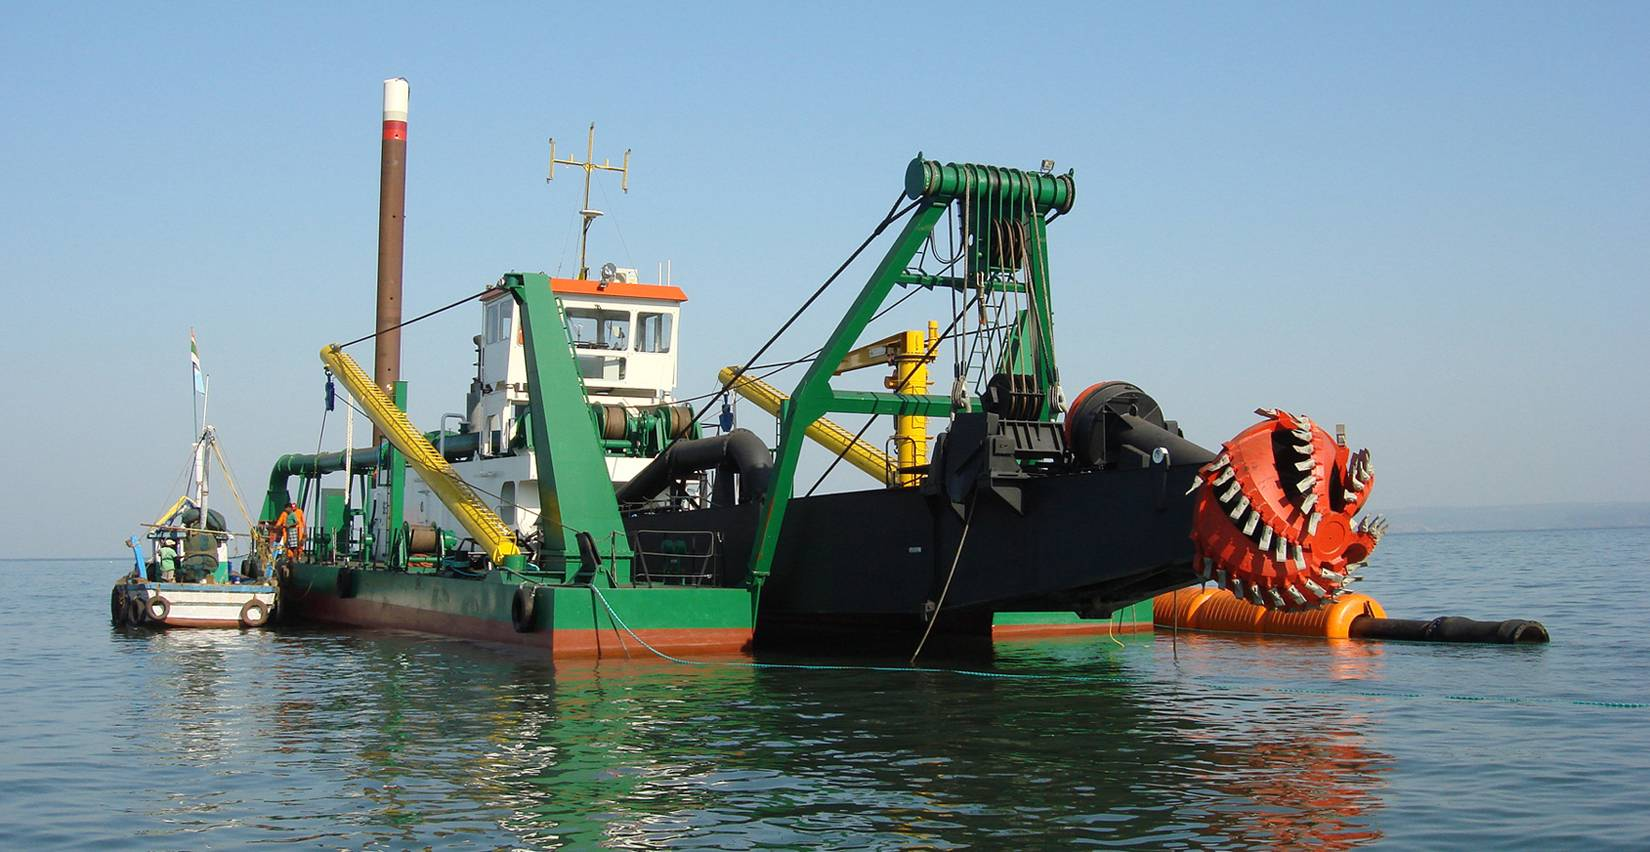 File Photo courtesy of IHC Beaver Dredgers B.V.